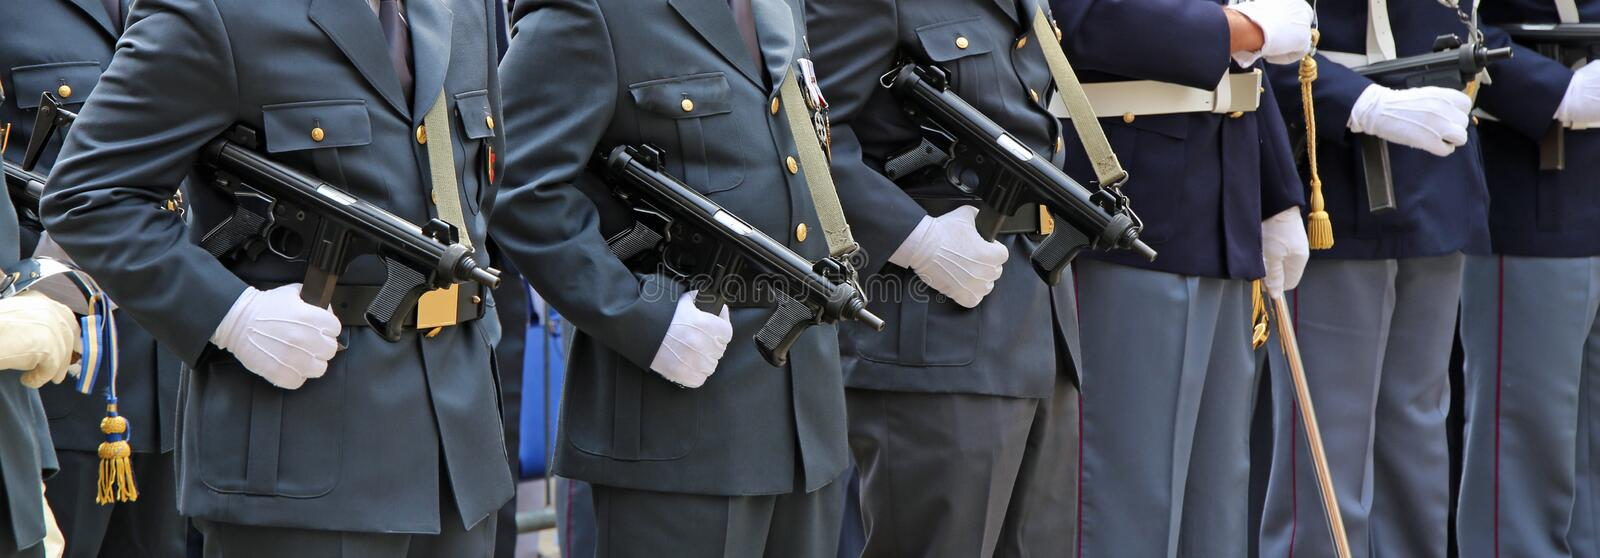 Armed officers of the Italian police in uniform. During the parade for the celebration of the Italian armed forces stock photo